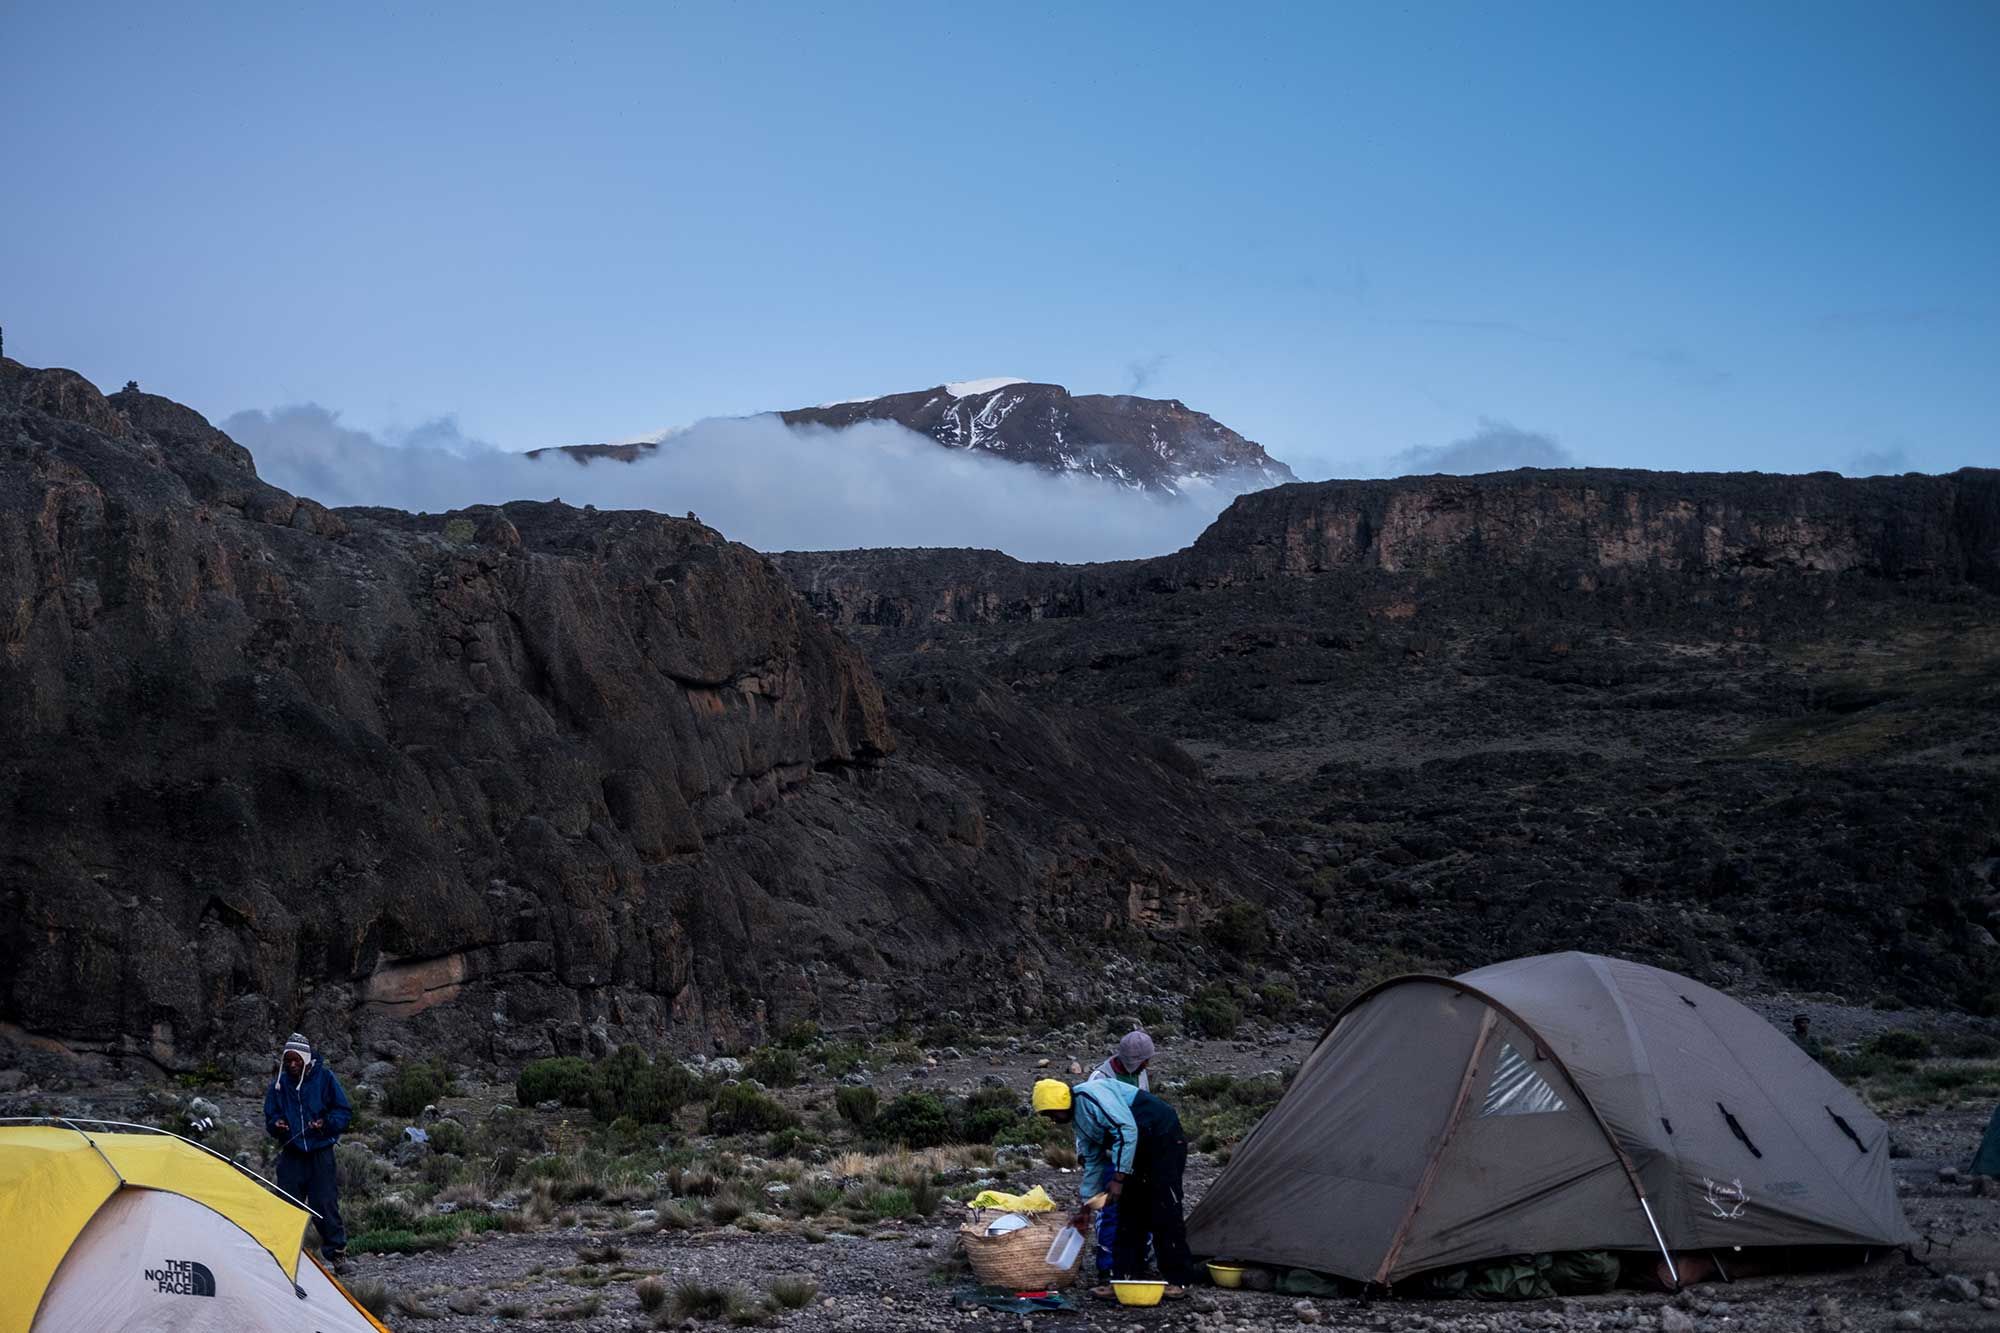 D3-33-kibo-kilimanjaro-pokes-out-from-clouds-at-dusk.jpg